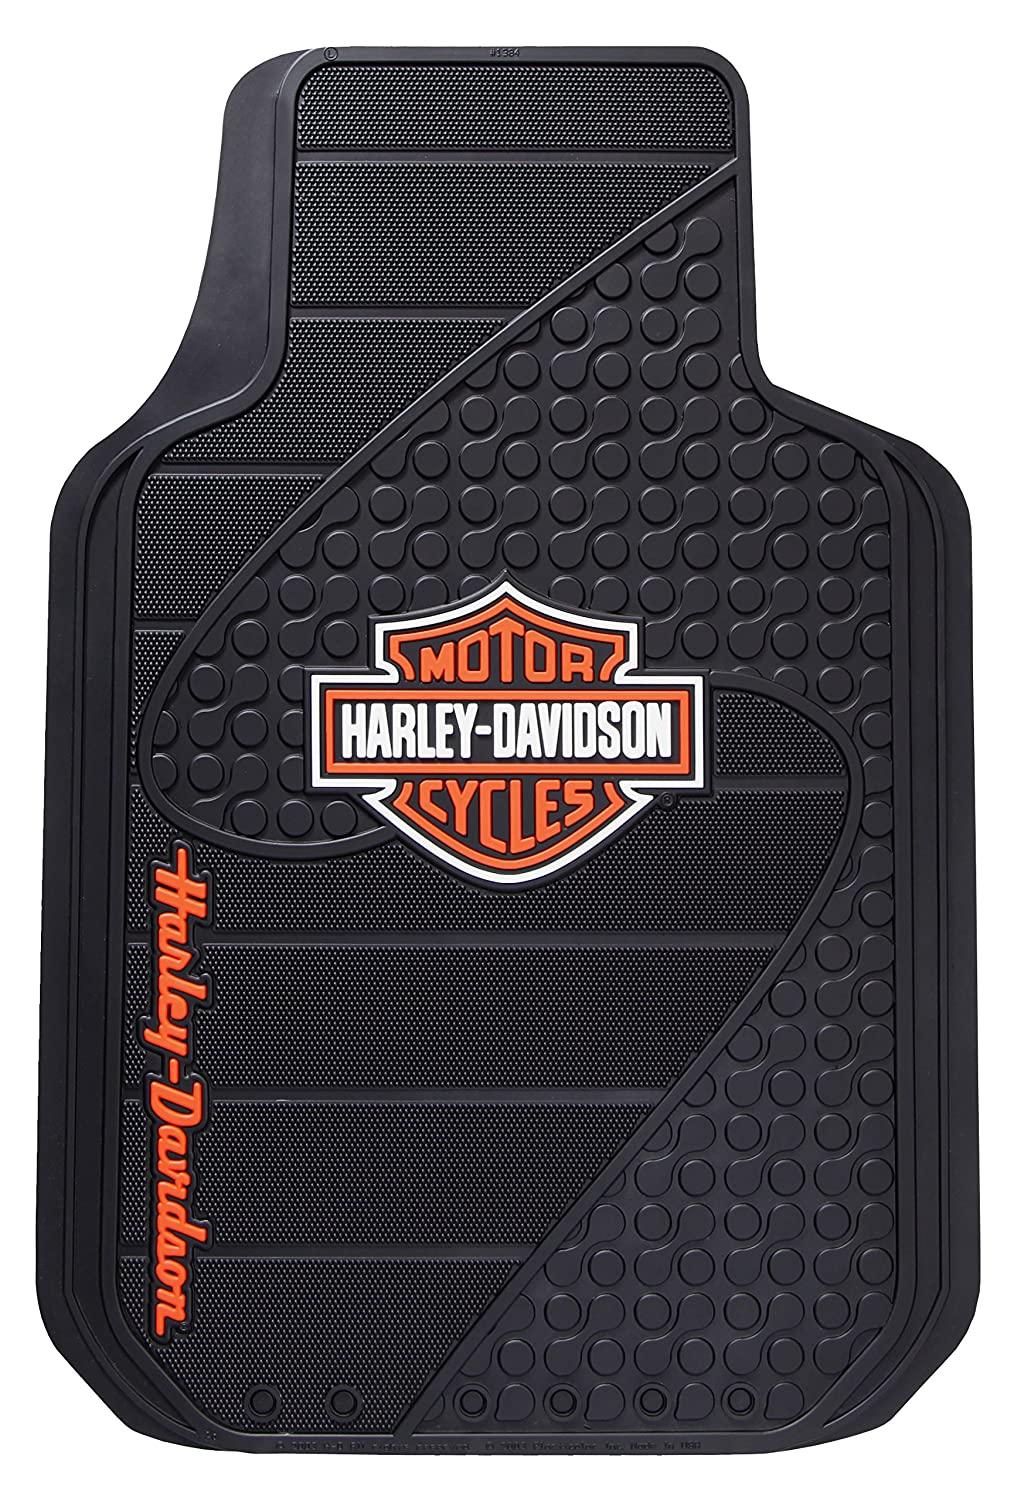 Plasticolor 001384R01 Universal Fit Harley B&S Factory Floor Mat Harley-Davidson